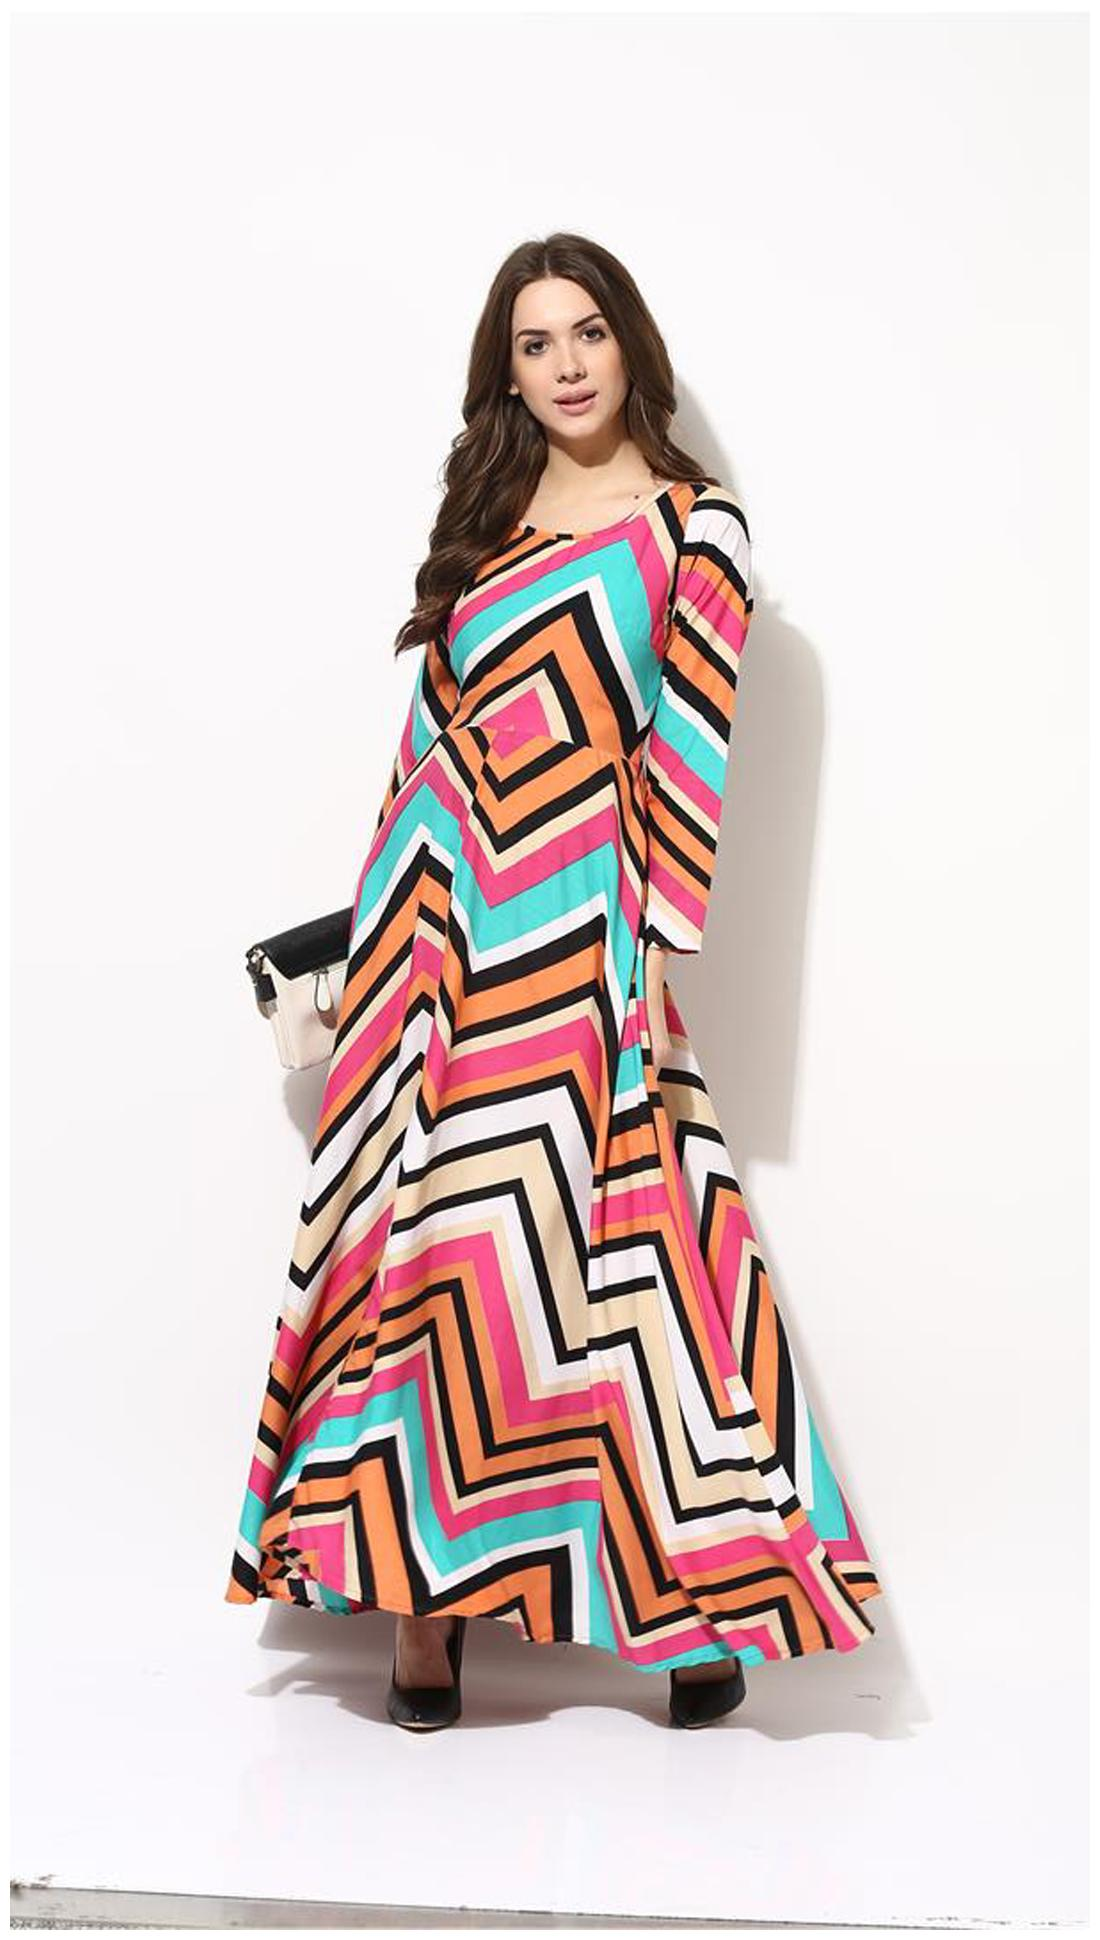 dd2a814d7470 https   assetscdn1.paytm.com images catalog product . AKS Multicolored  Printed Maxi Dress